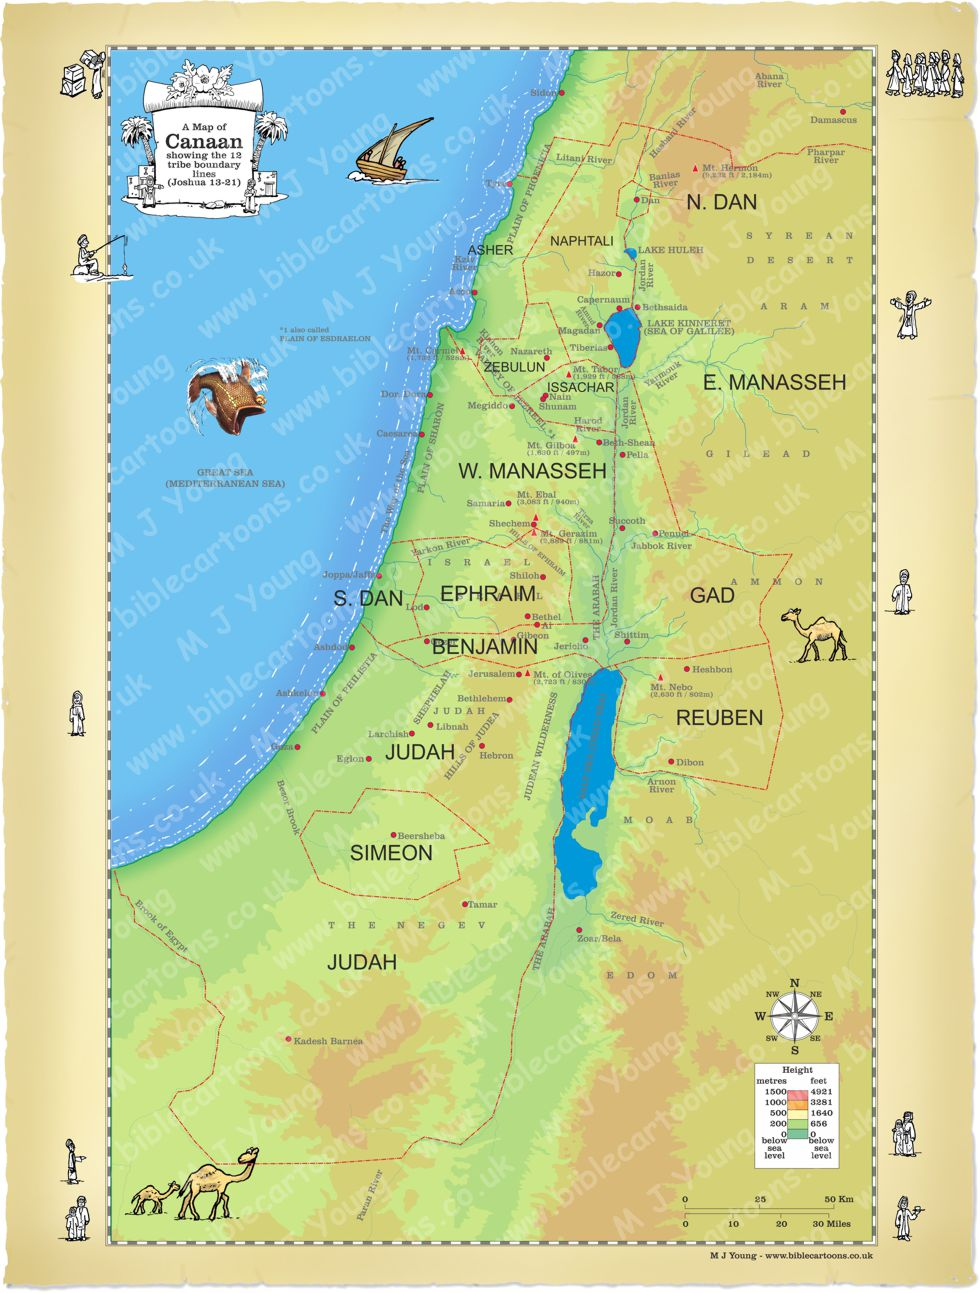 Map_Israel_12_tribe_boundaries_map.jpg